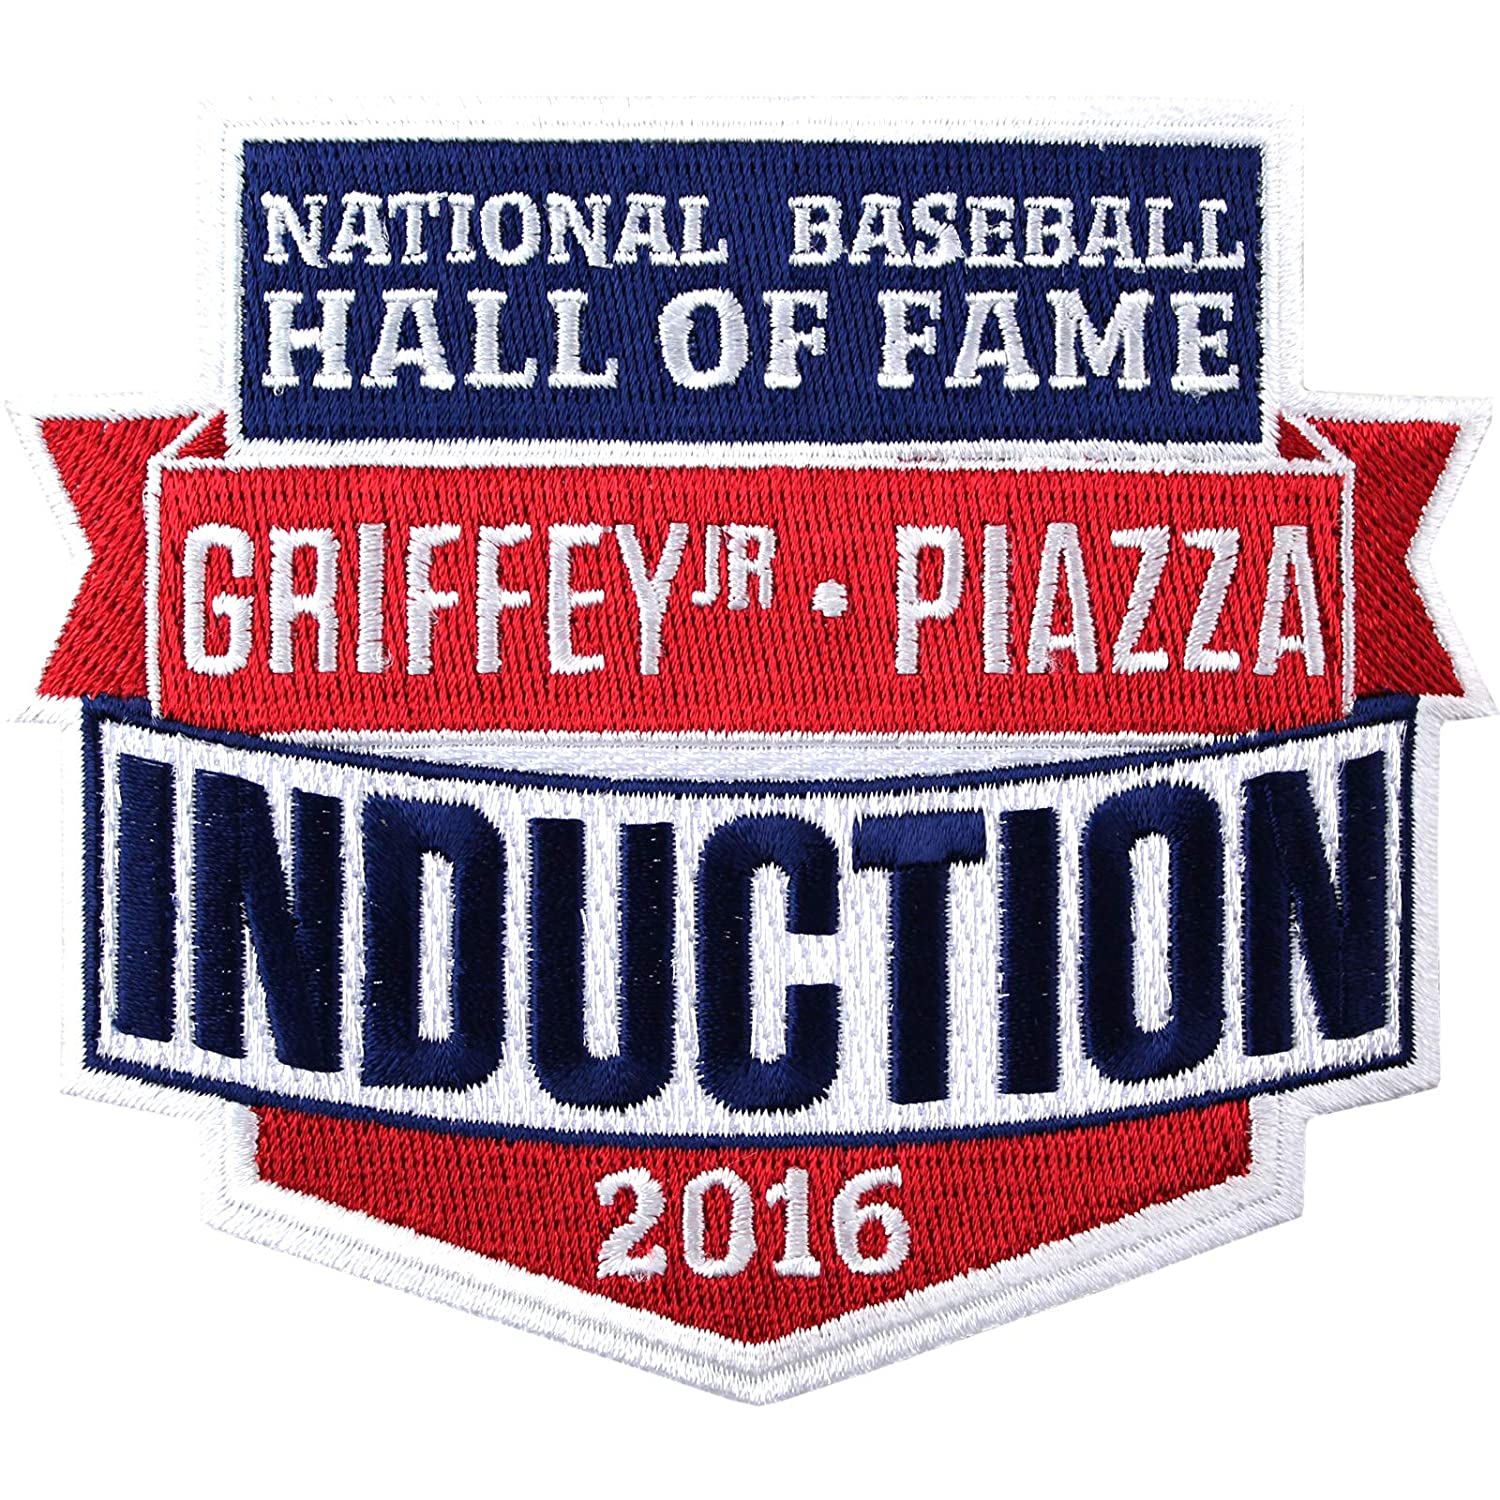 Patch Collection 2016 National Hall of Fame Induction Ft Ken Griffey Jr and Mike Piazza